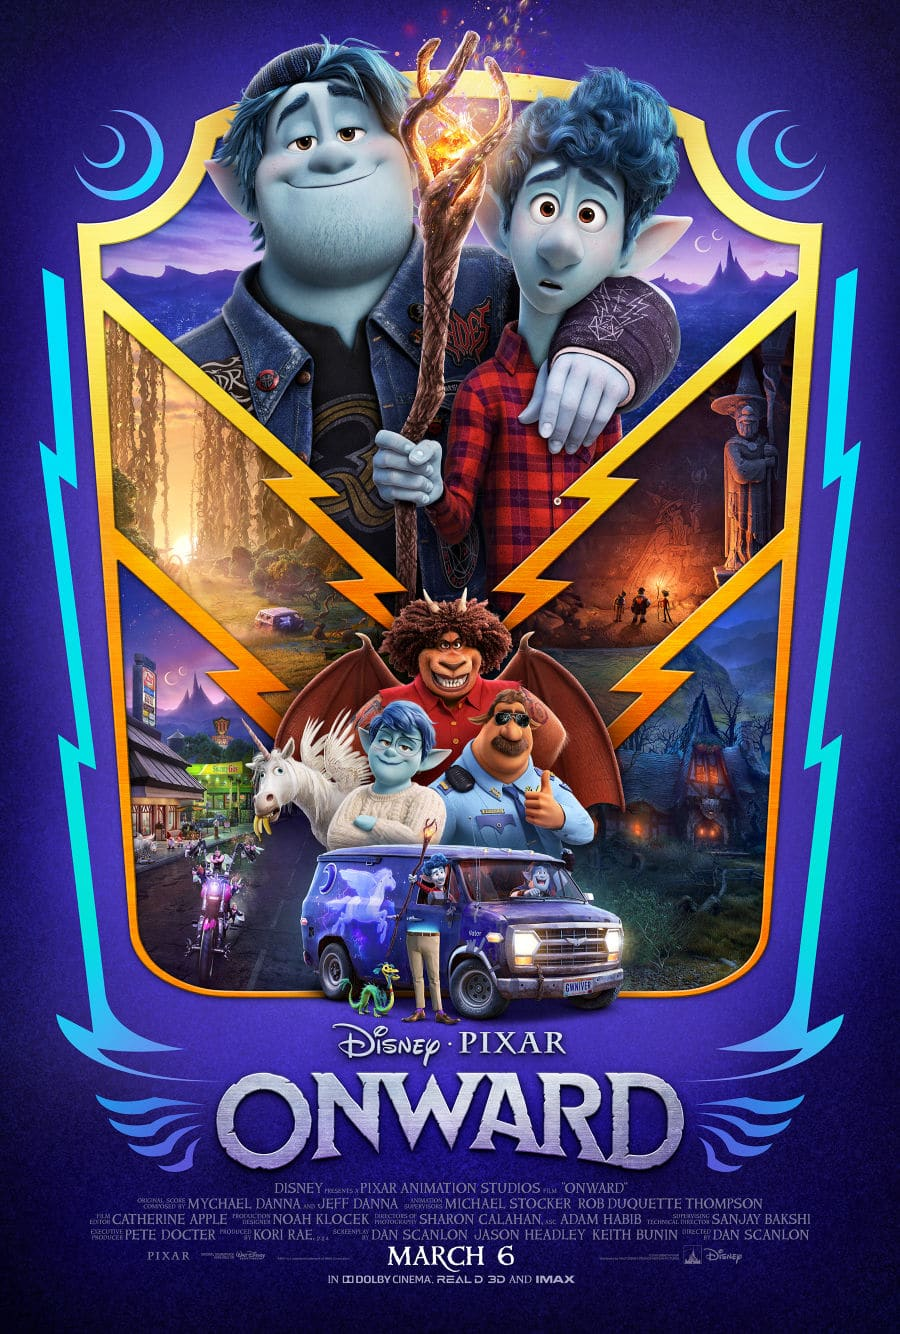 Disney Pixar Onward movie poster in Onward parents guide